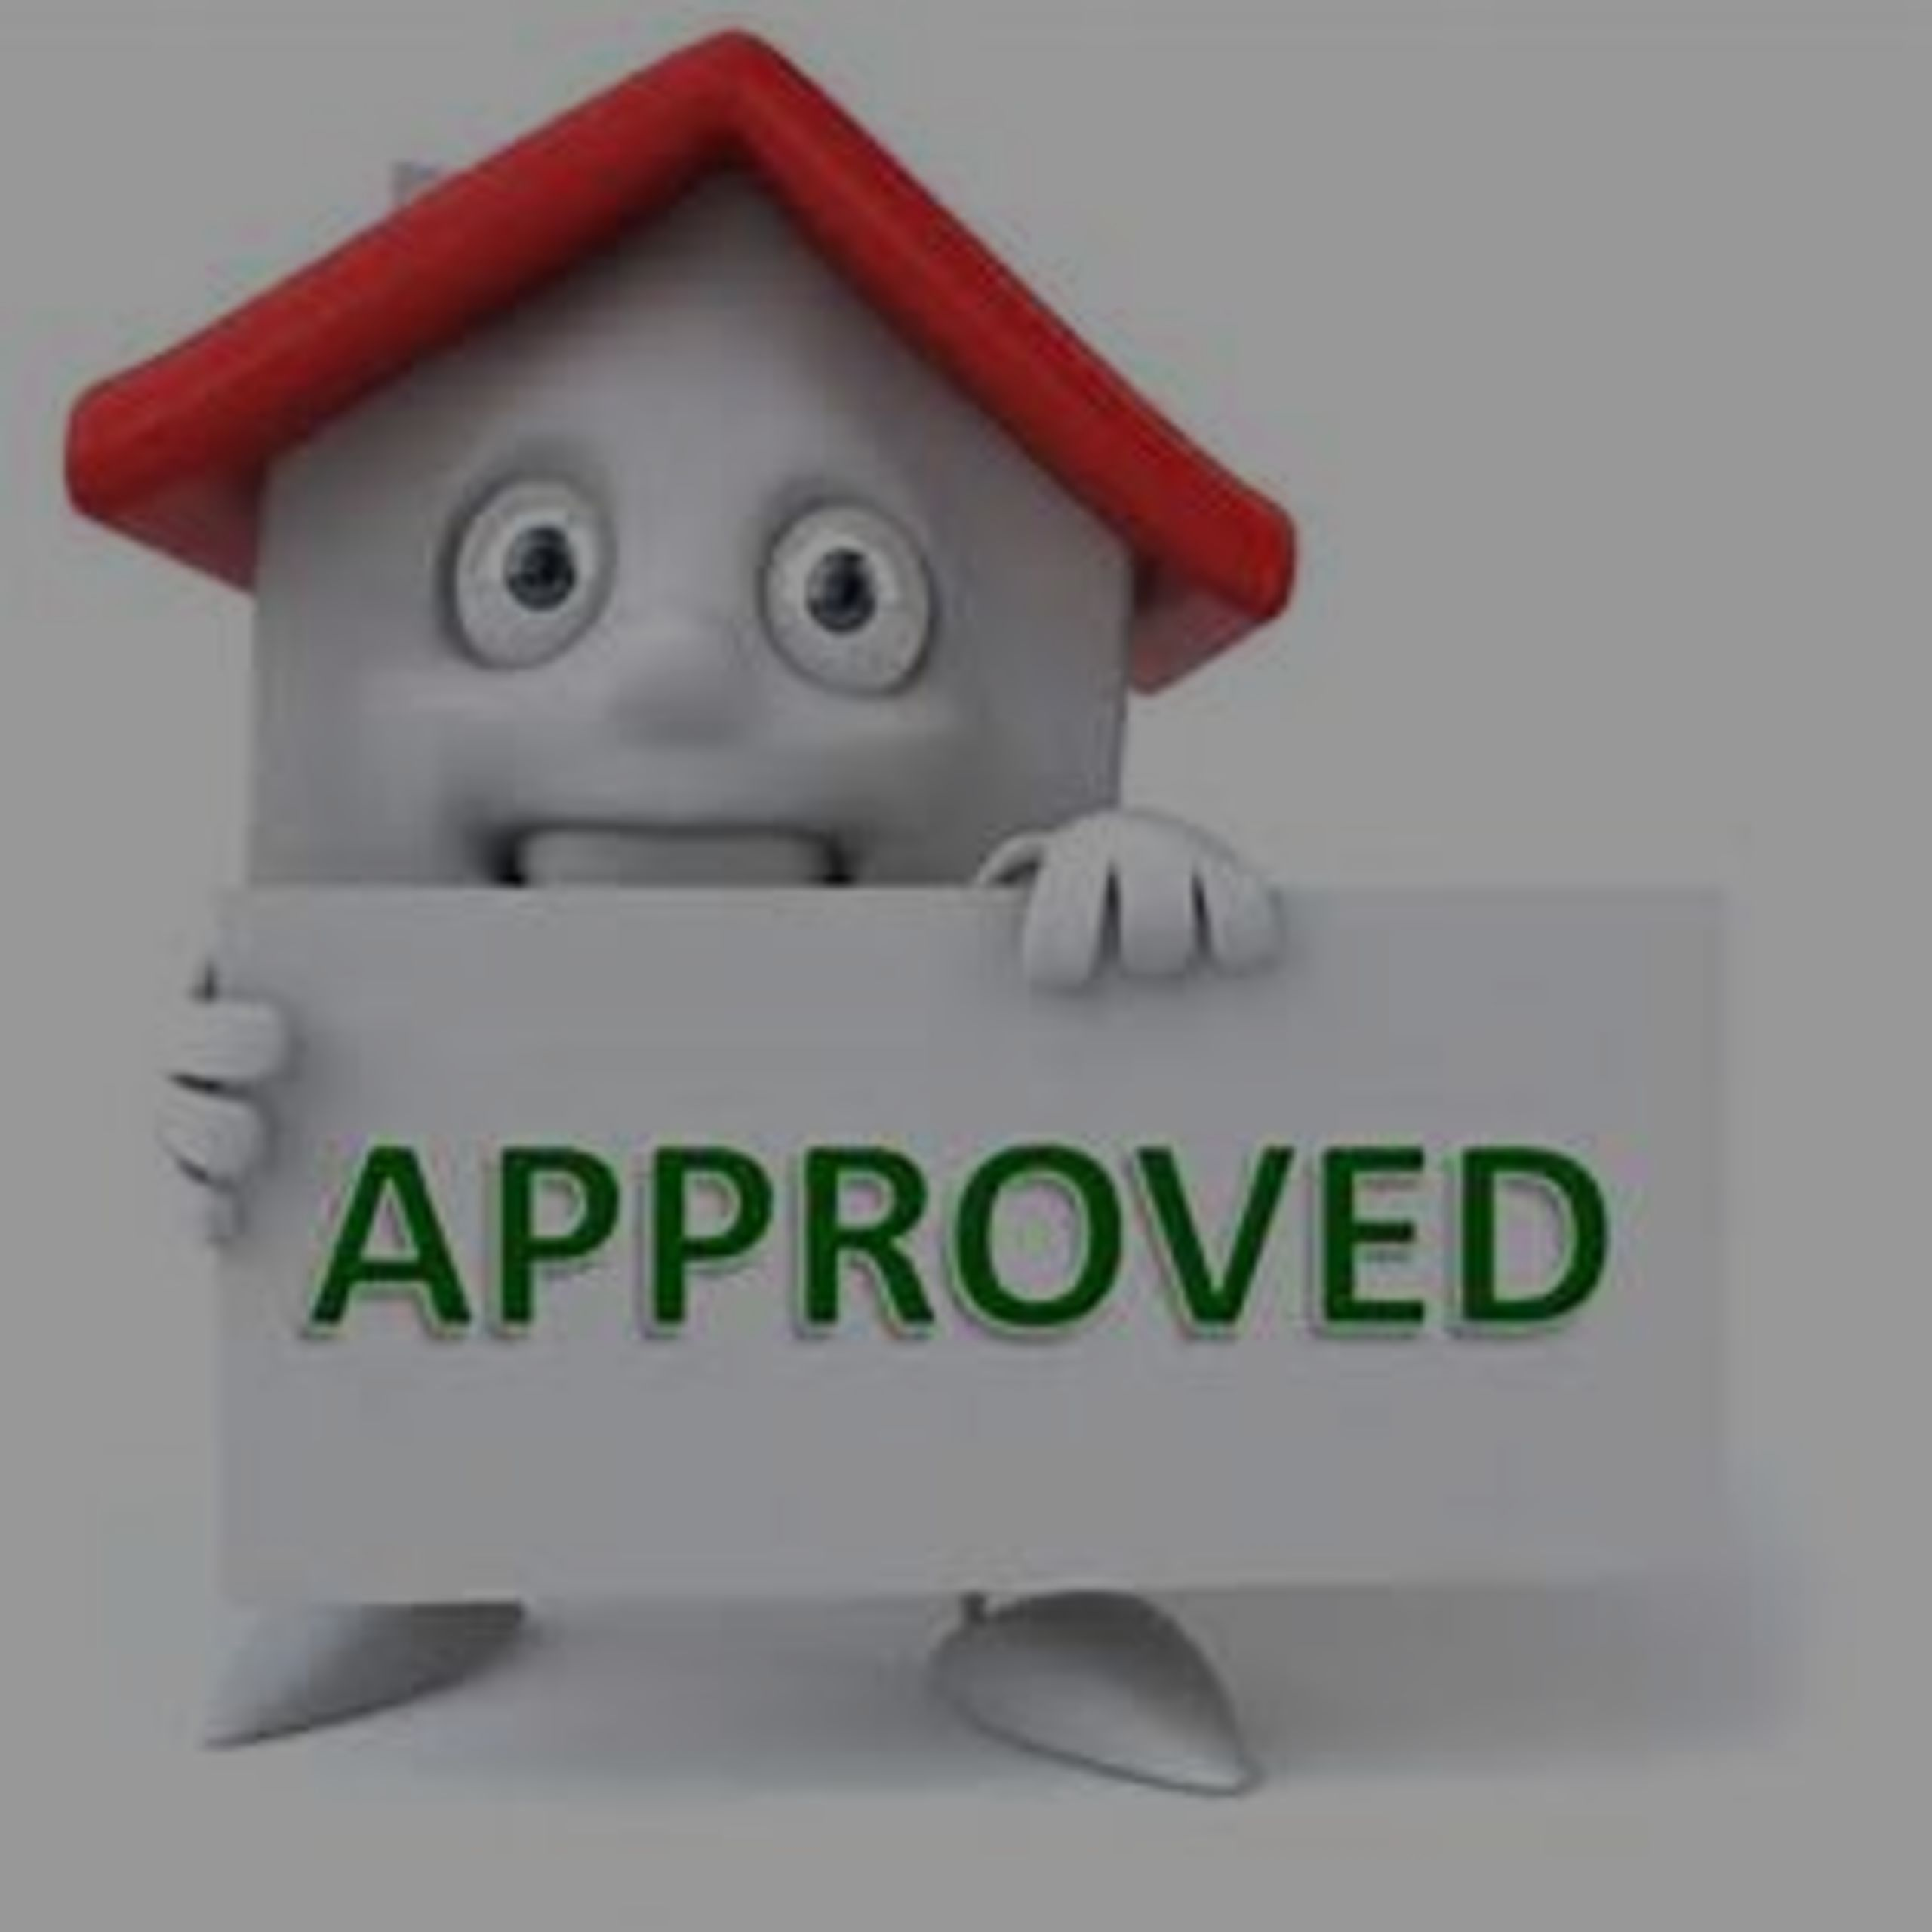 Should I Get Pre-approved Before Looking at Homes to Buy?